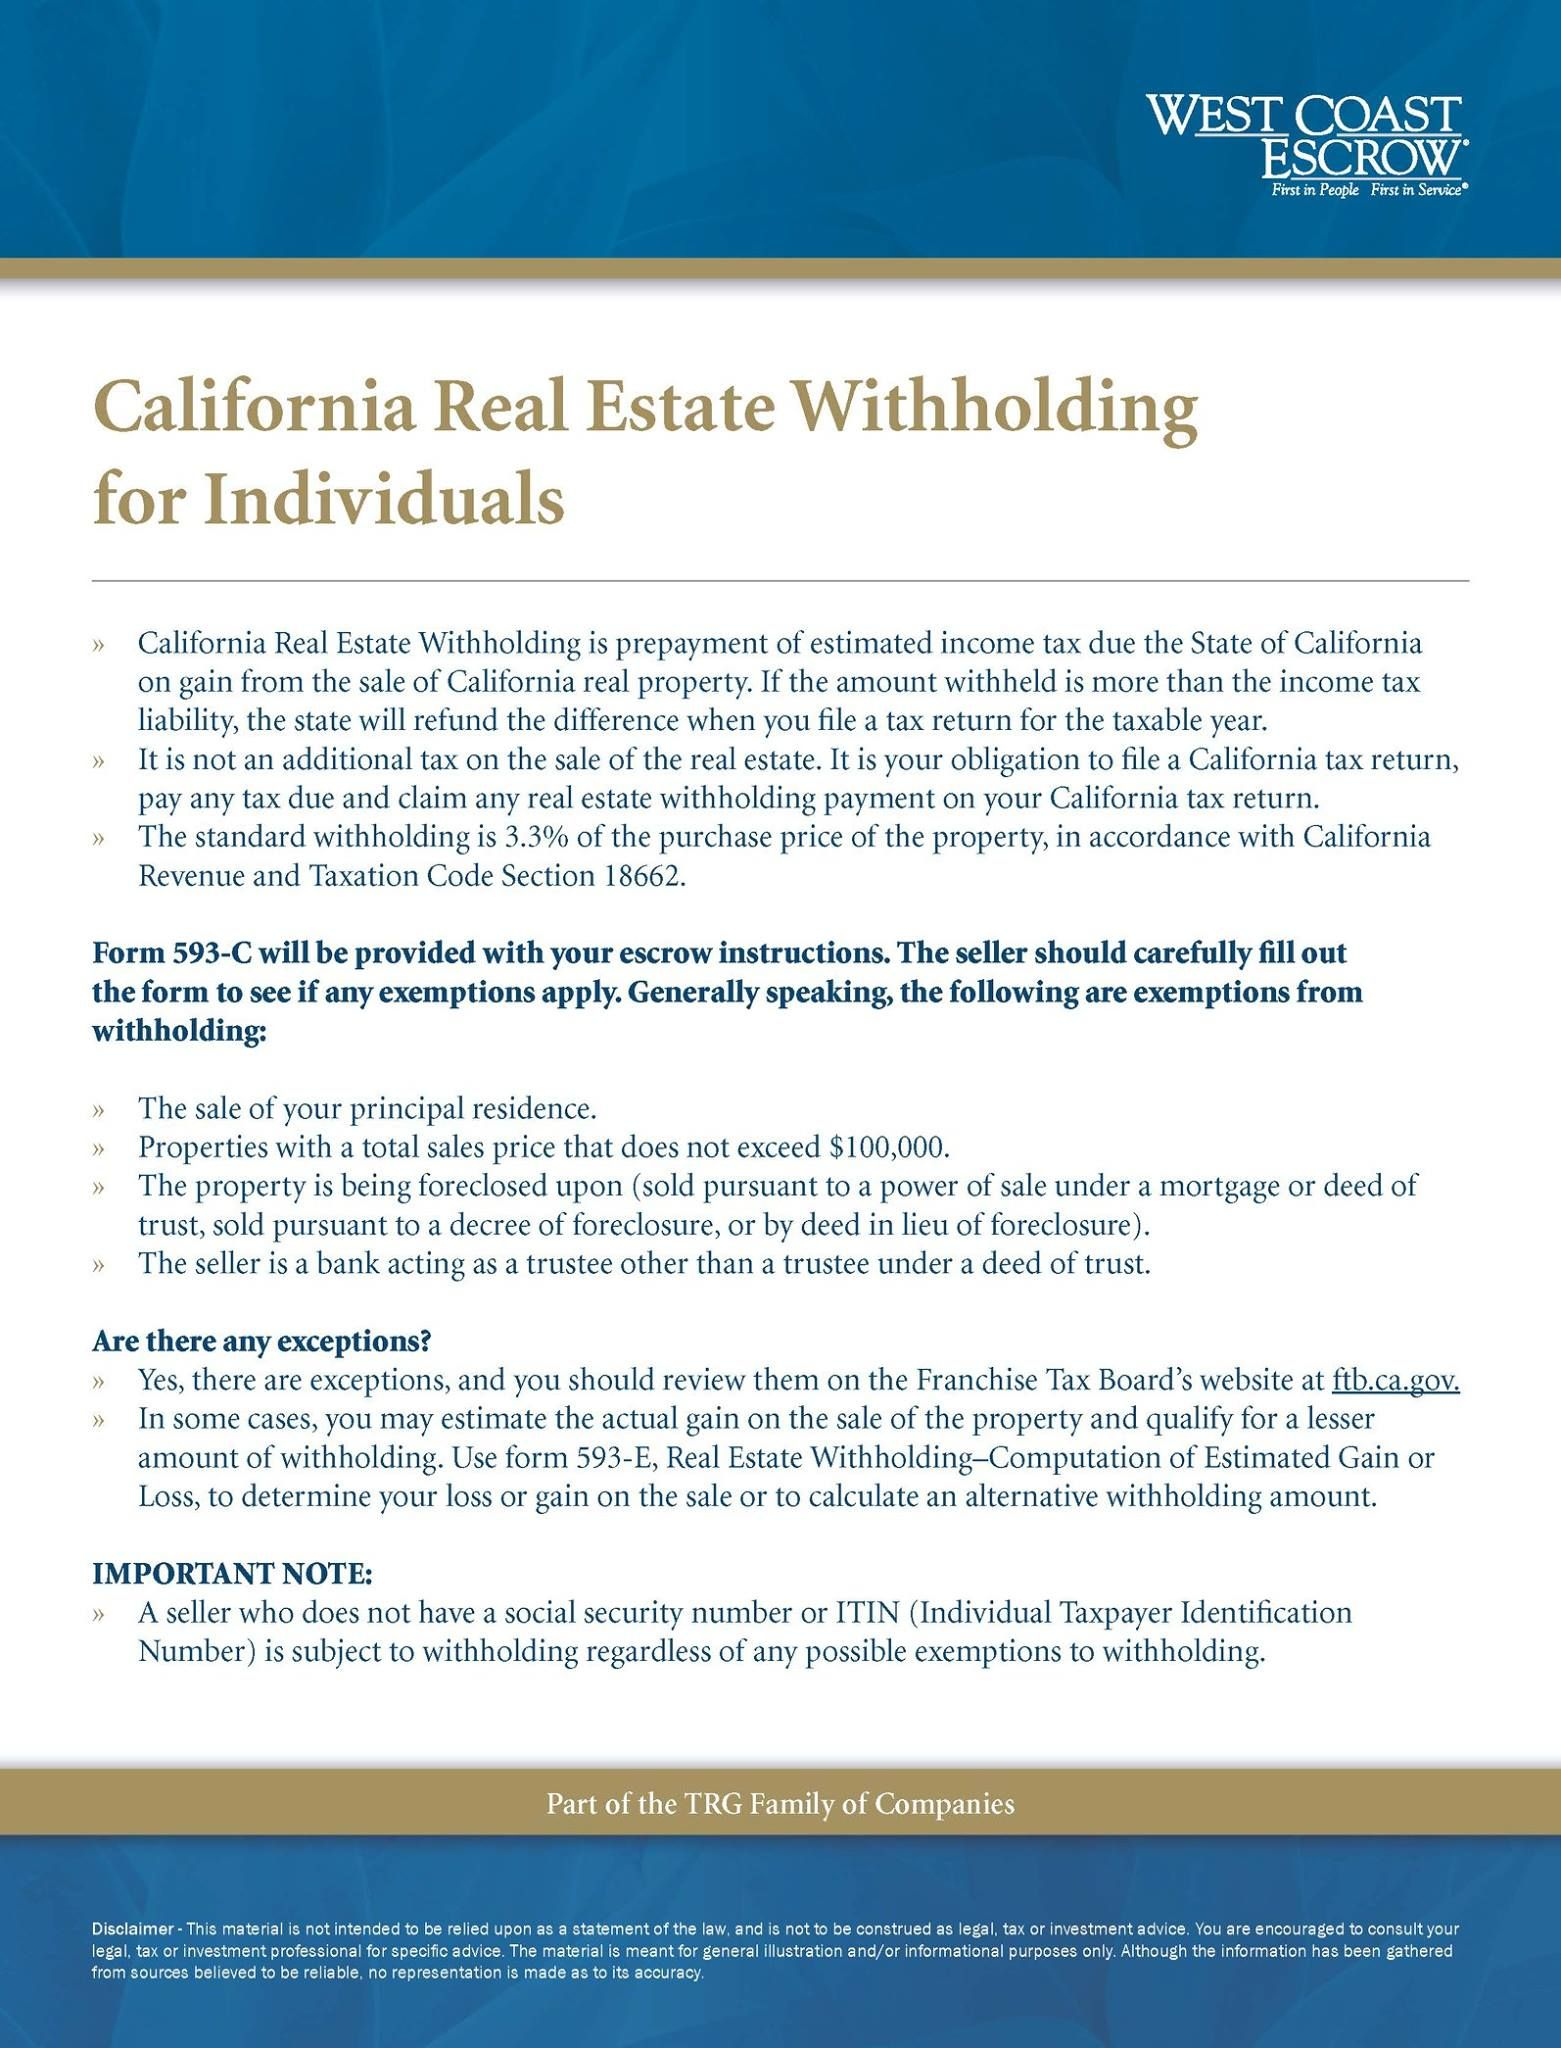 California Real Estate Withholding For Individuals